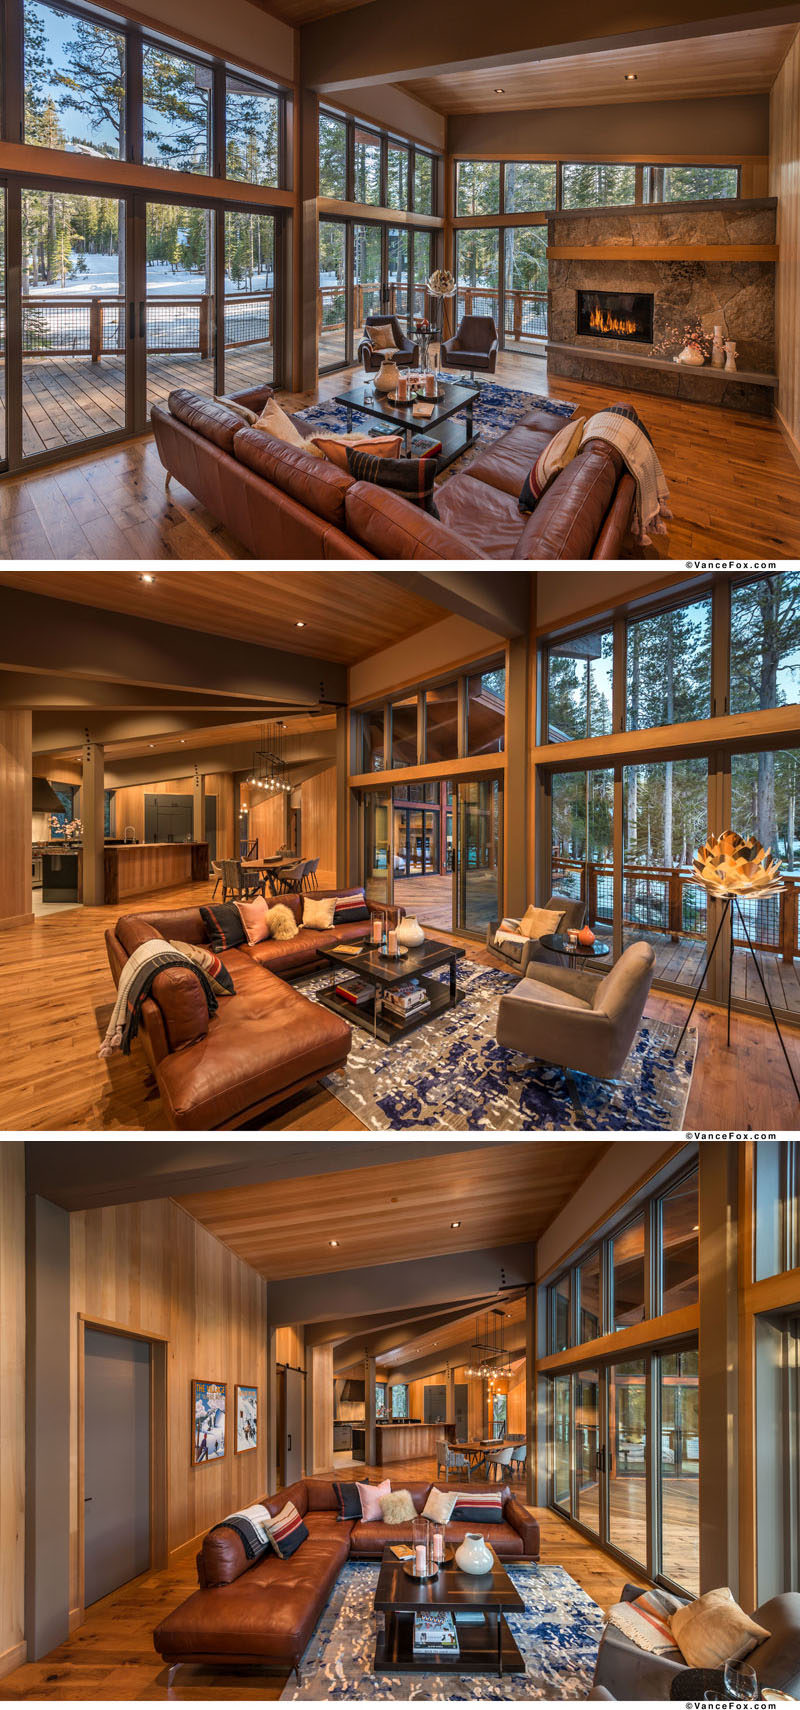 The upper floor of this modern mountain home is centered around a great room, with one end of the room dedicated to a living room with a fireplace. #ModernCabin #ModernHouse #LivingRoom #GreatRoom